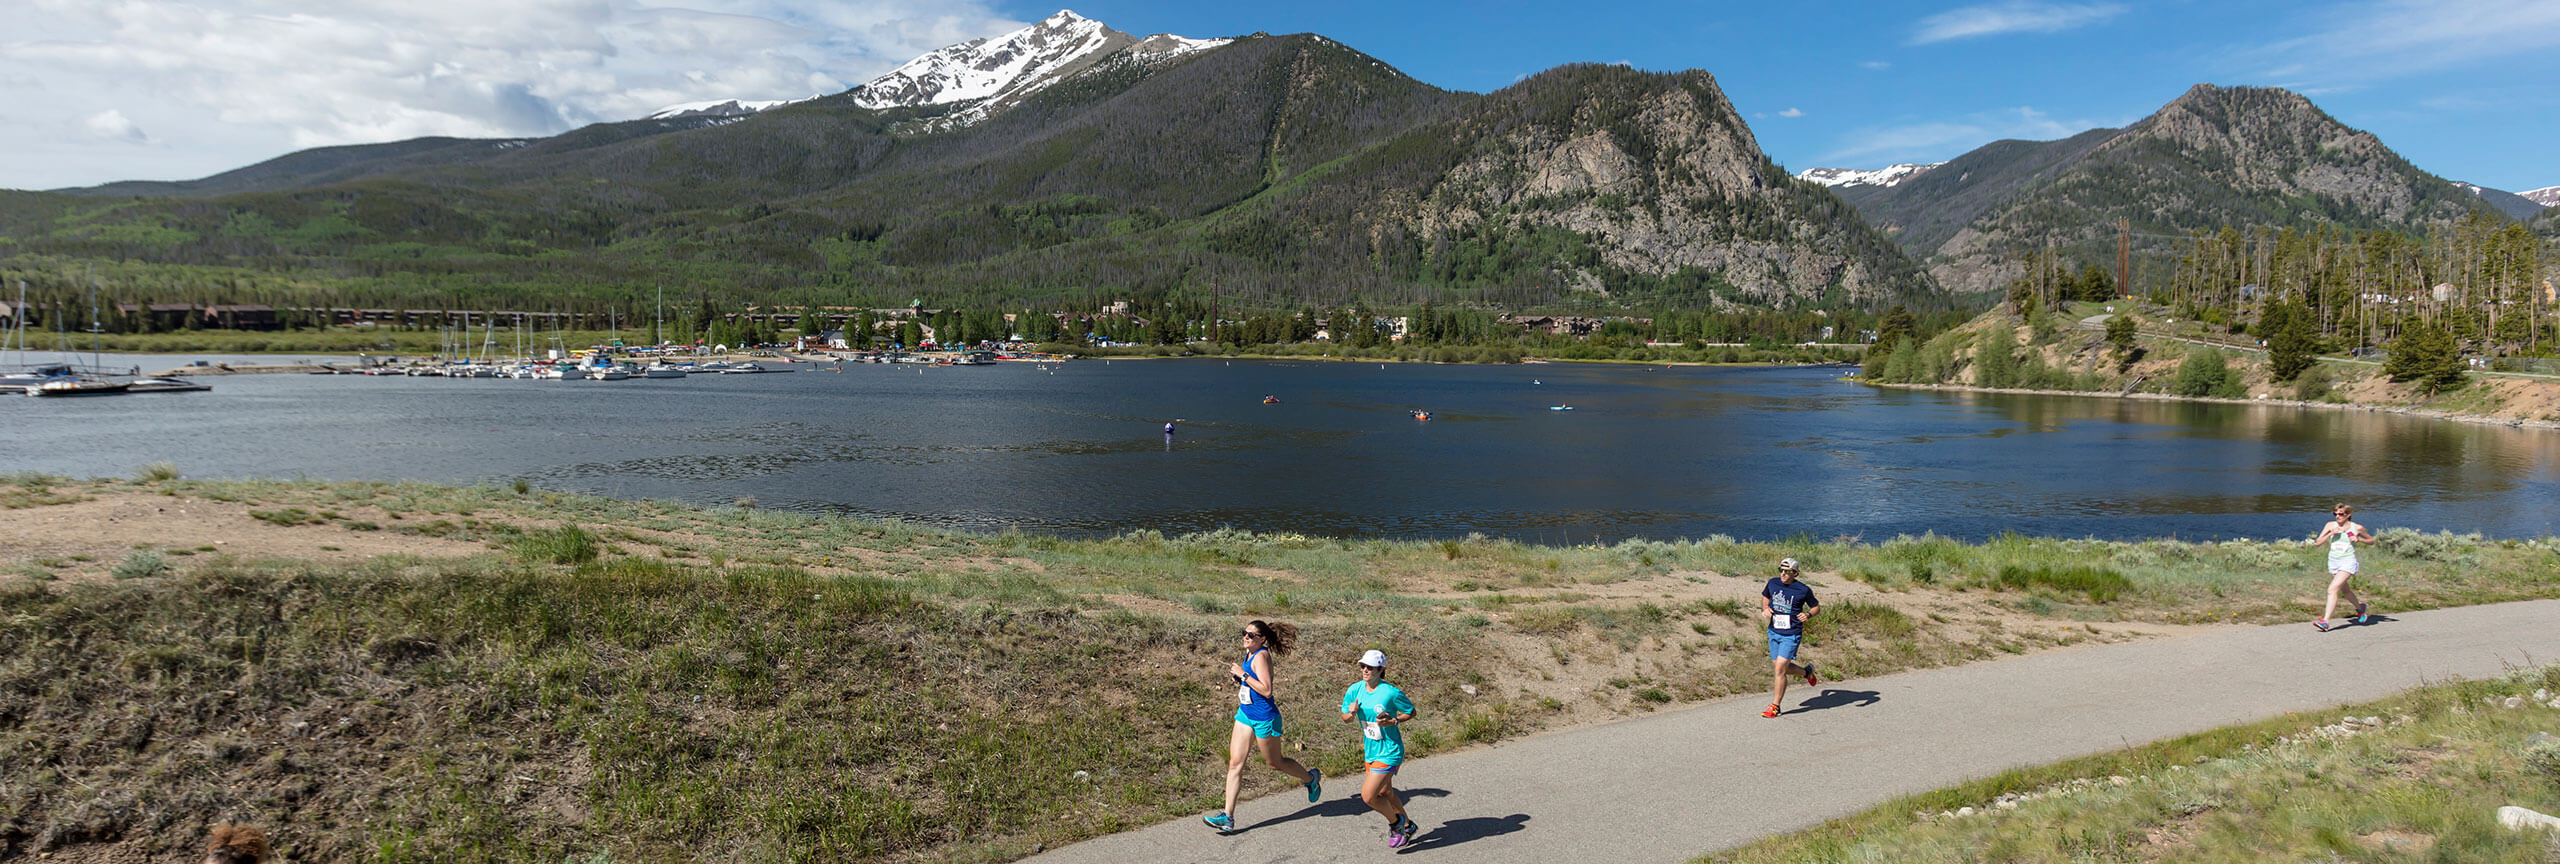 Runners running on rec path Dillon Reservoir and Ten Mile Mountains in background